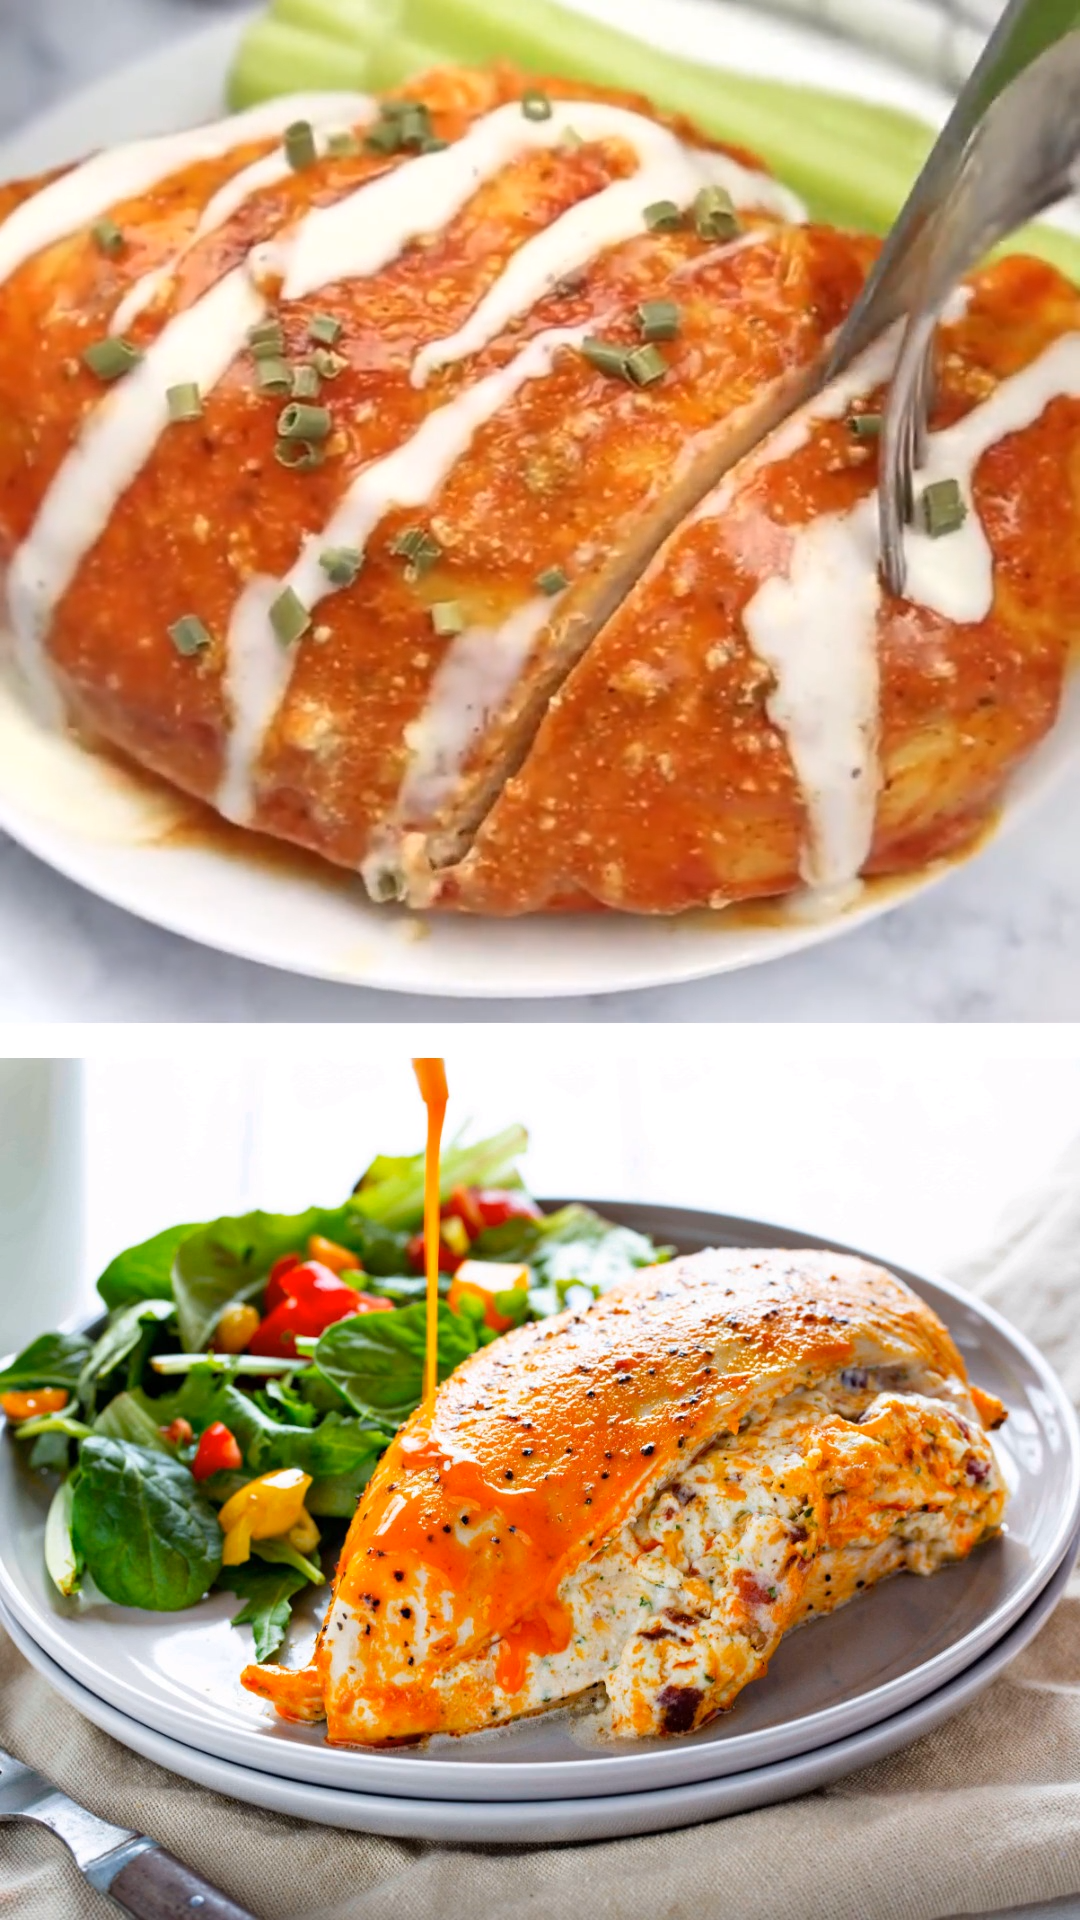 Stuffed Buffalo Chicken images